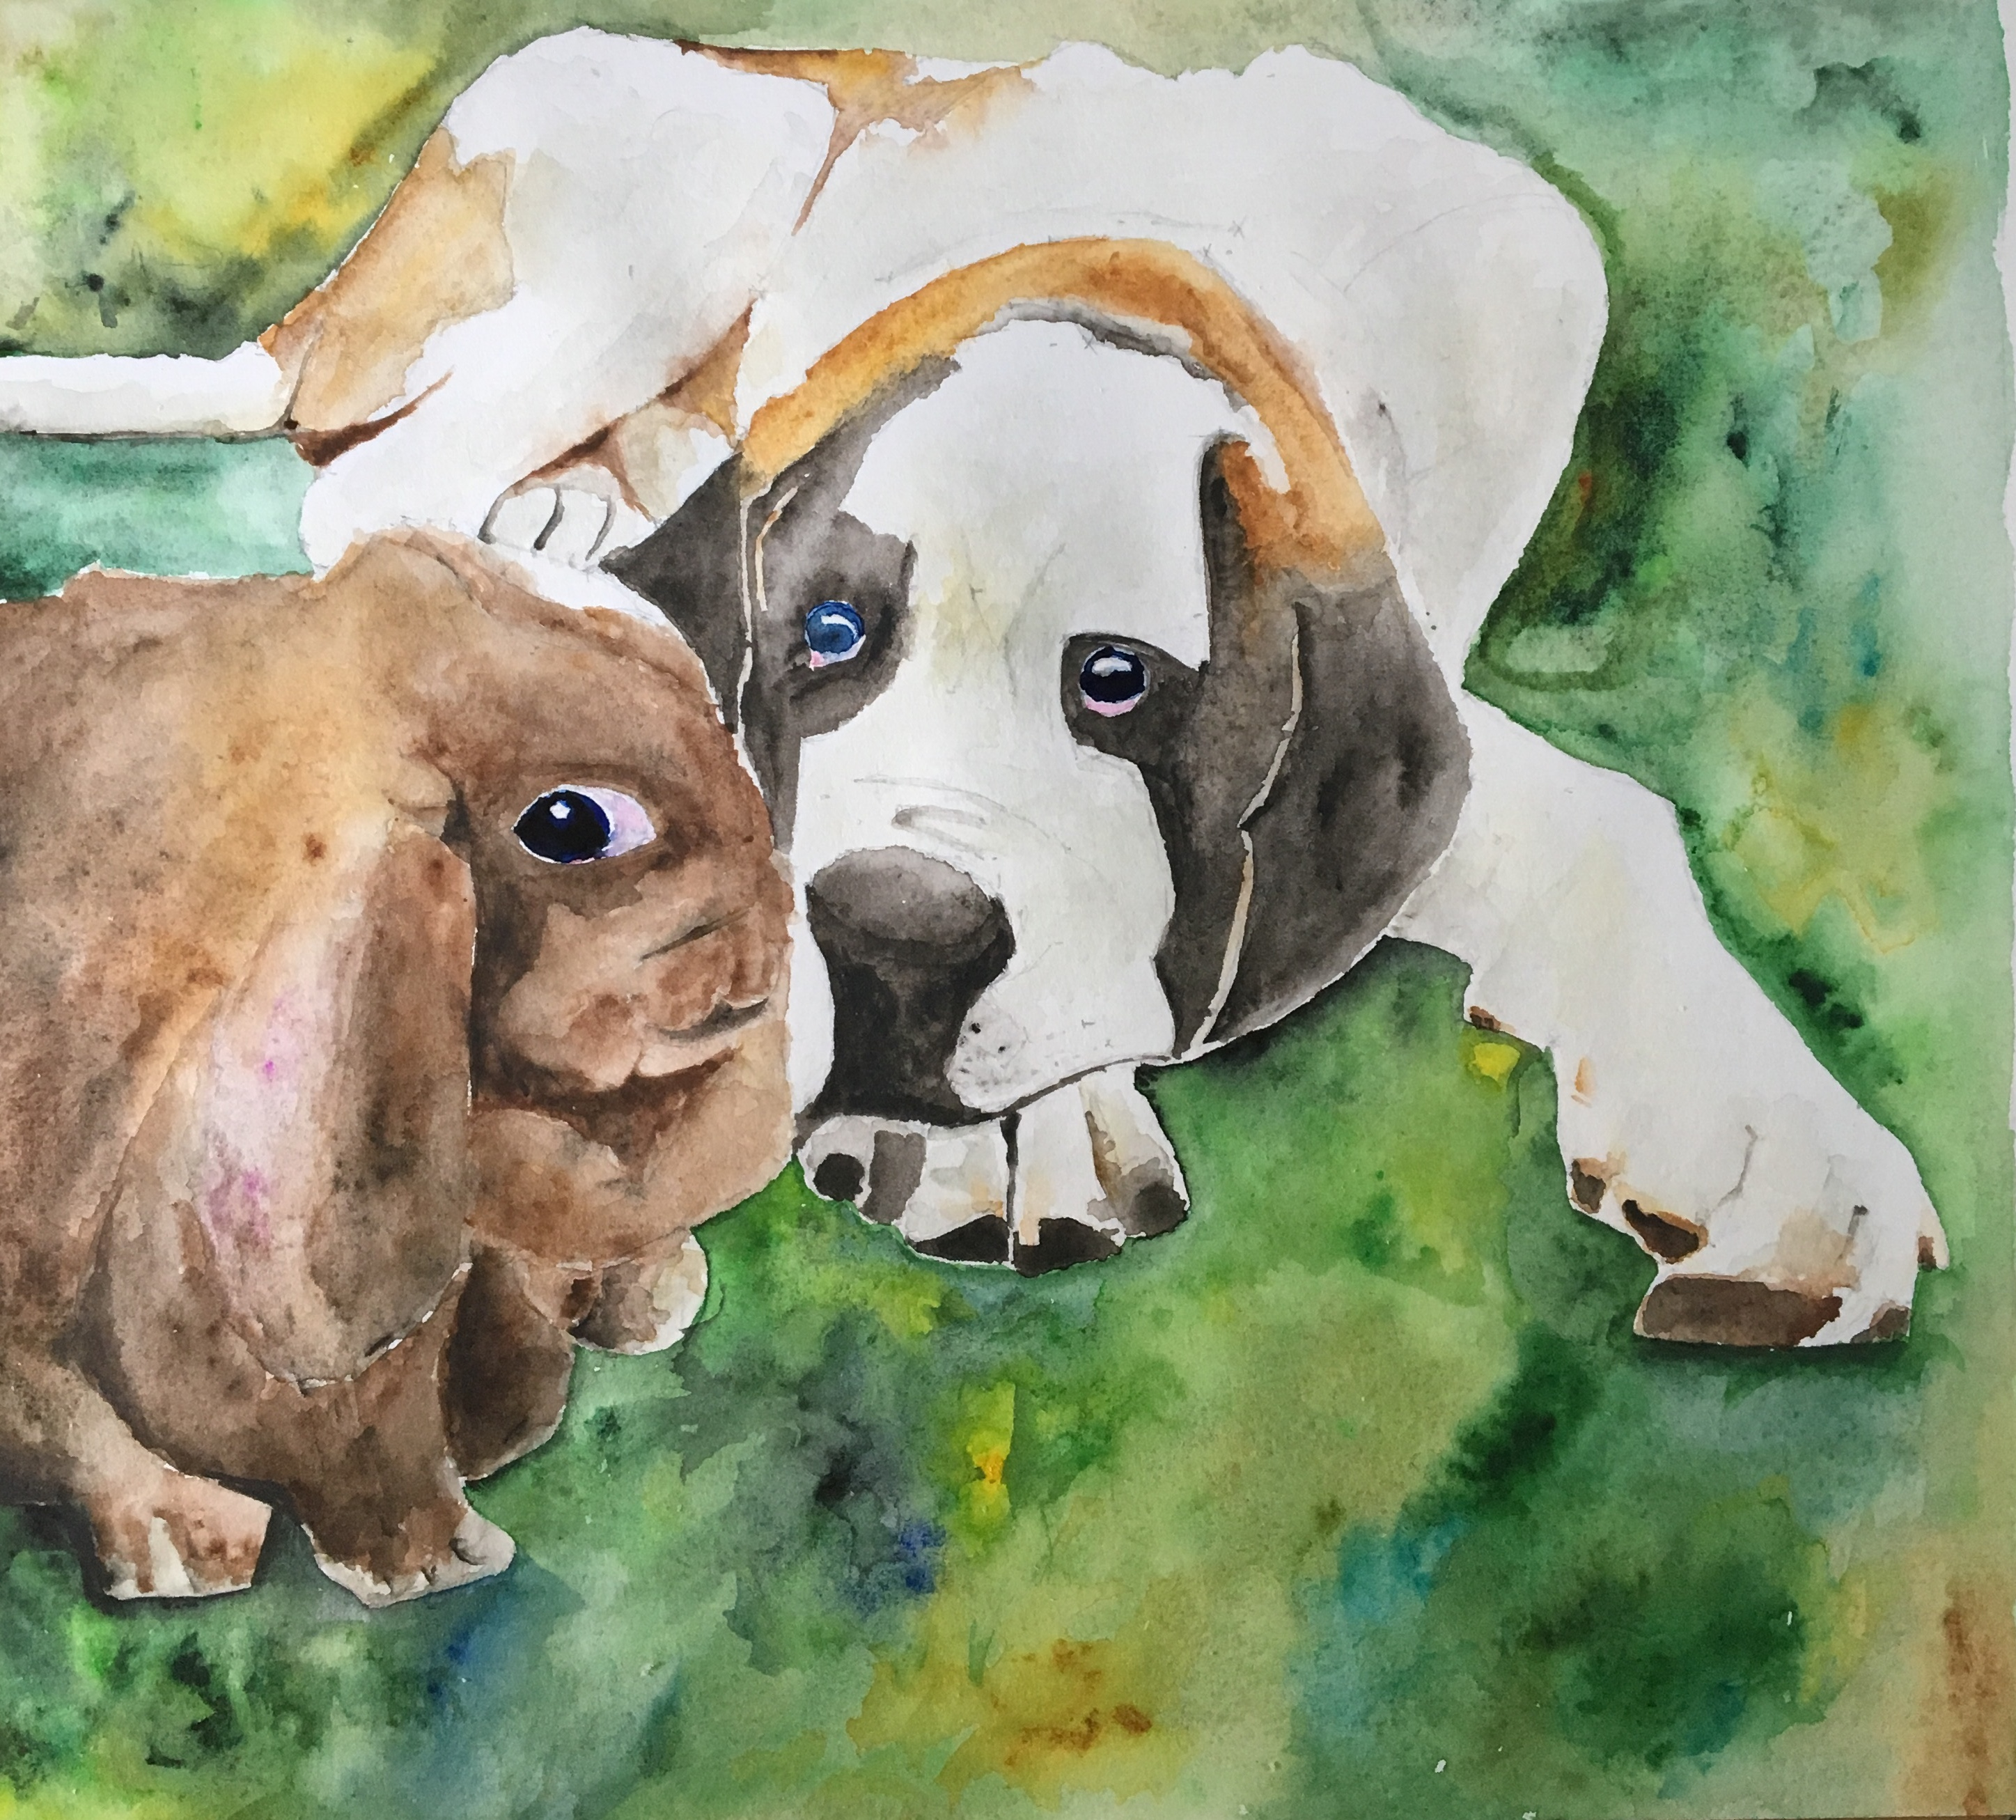 Painting of my dog and rabbit